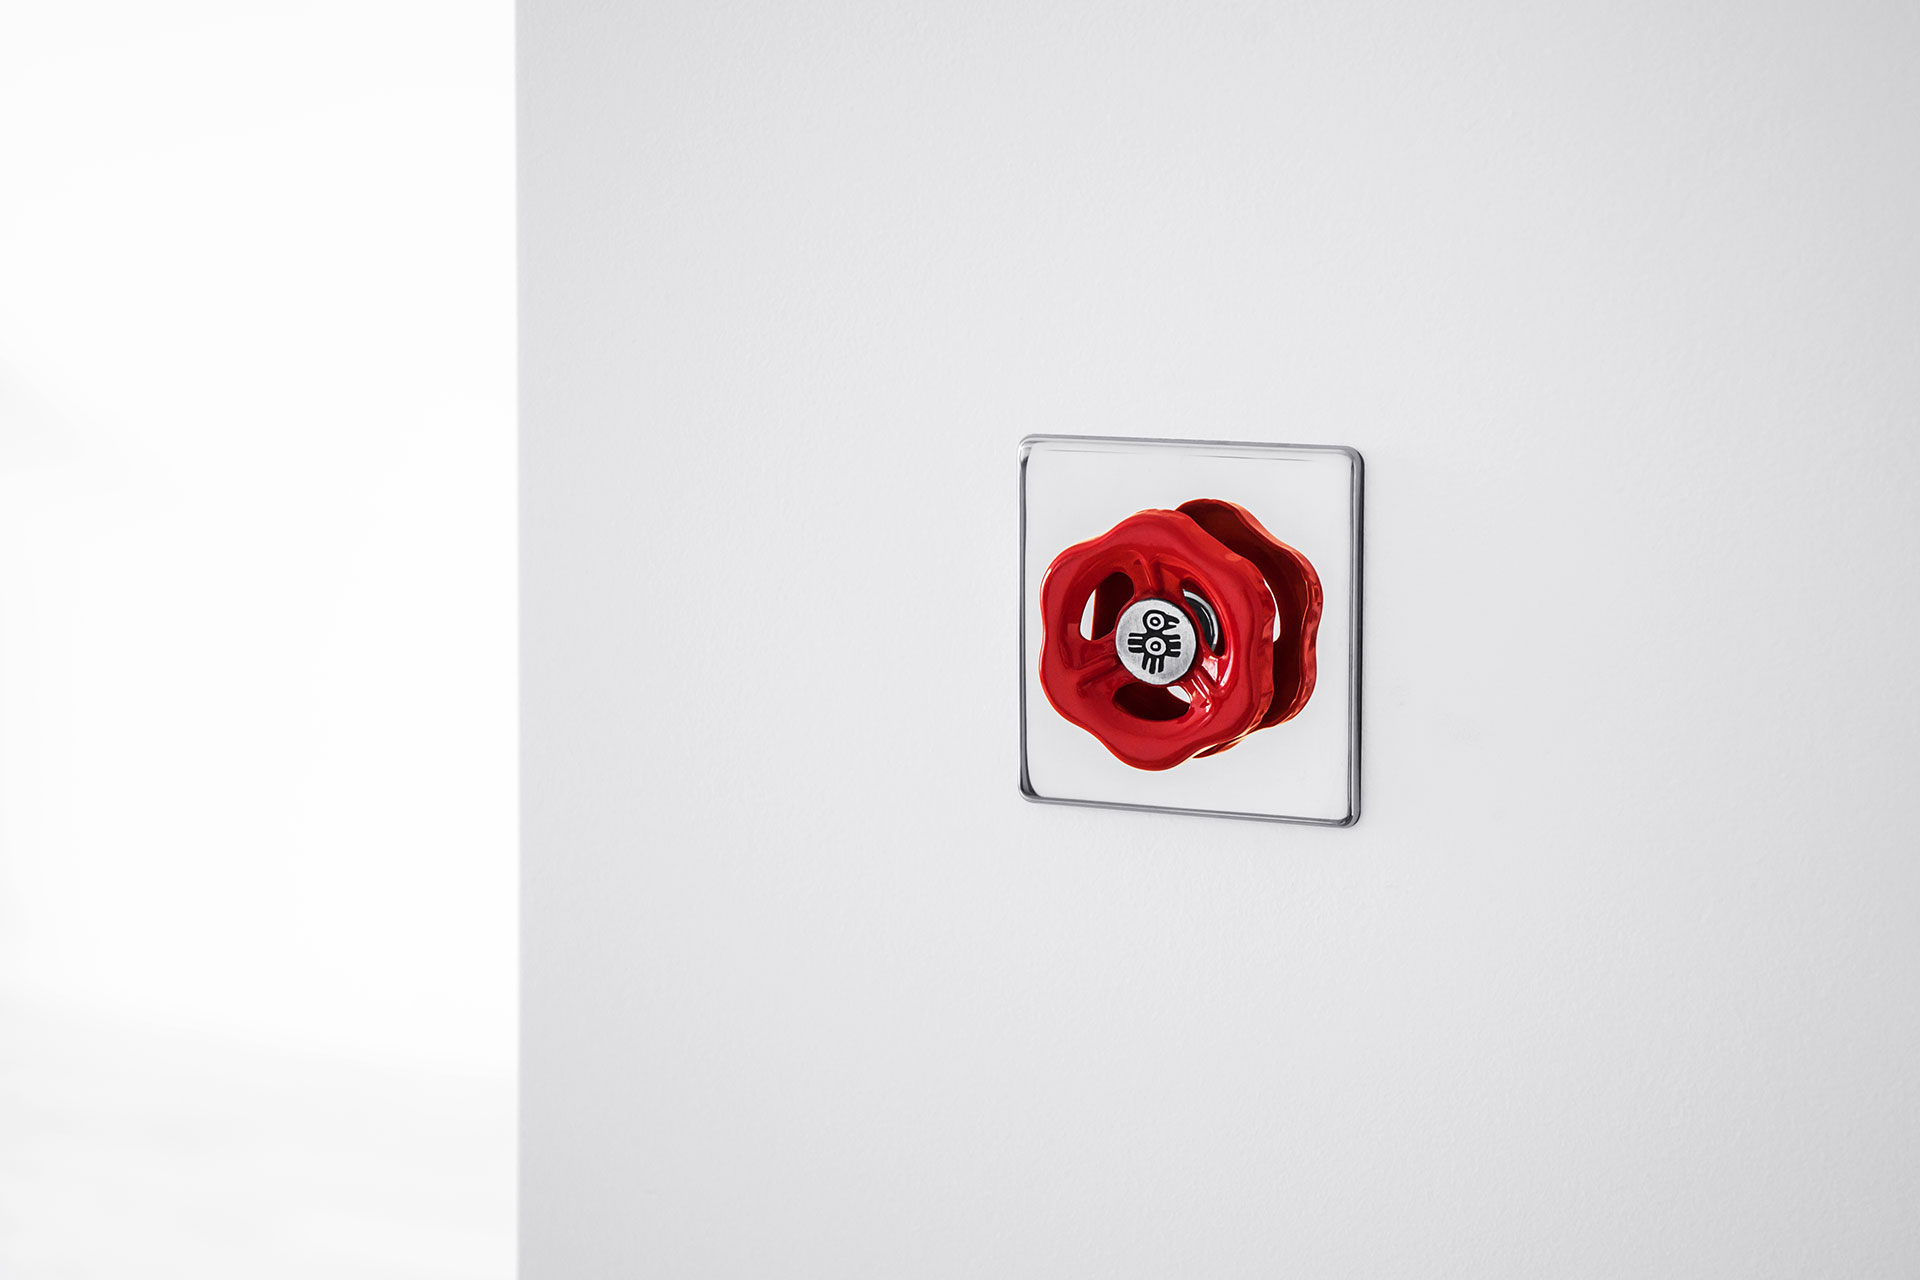 Creative design wall dimmer made of metal inspired by industrial and loft style